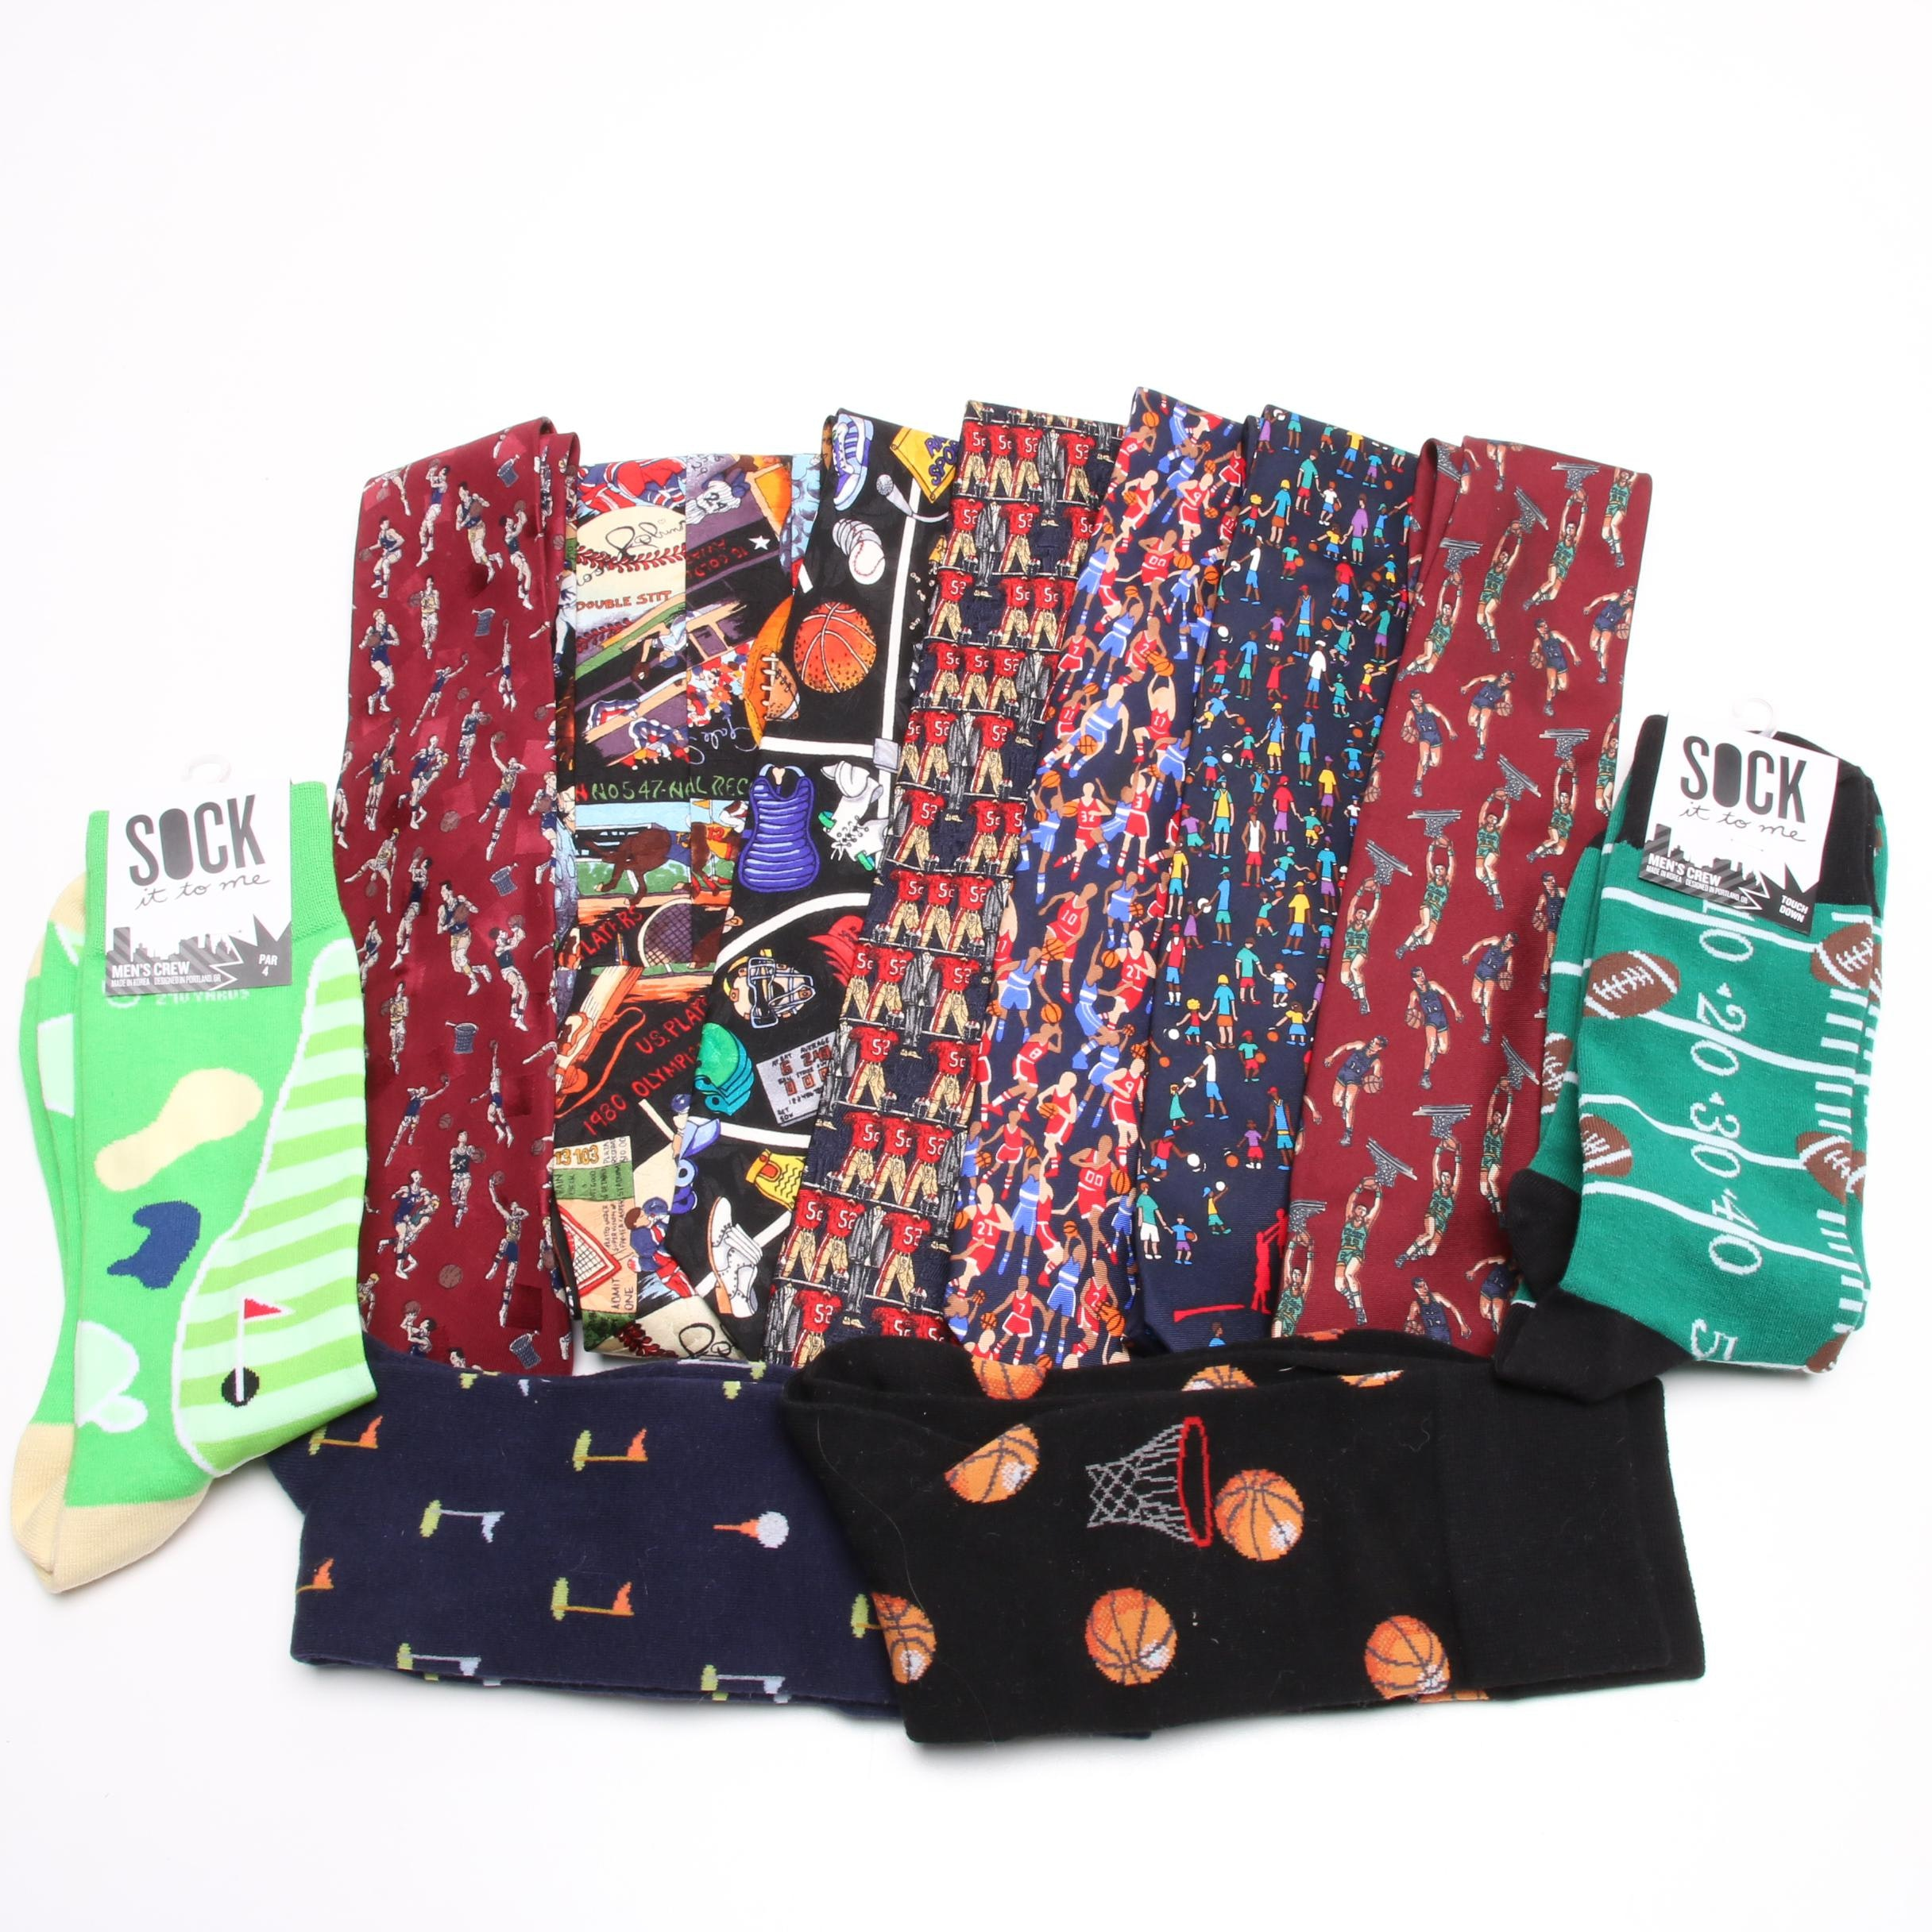 Sports Themed Neckties and Socks Including Ermenegildo Zegna and Nicole Miller